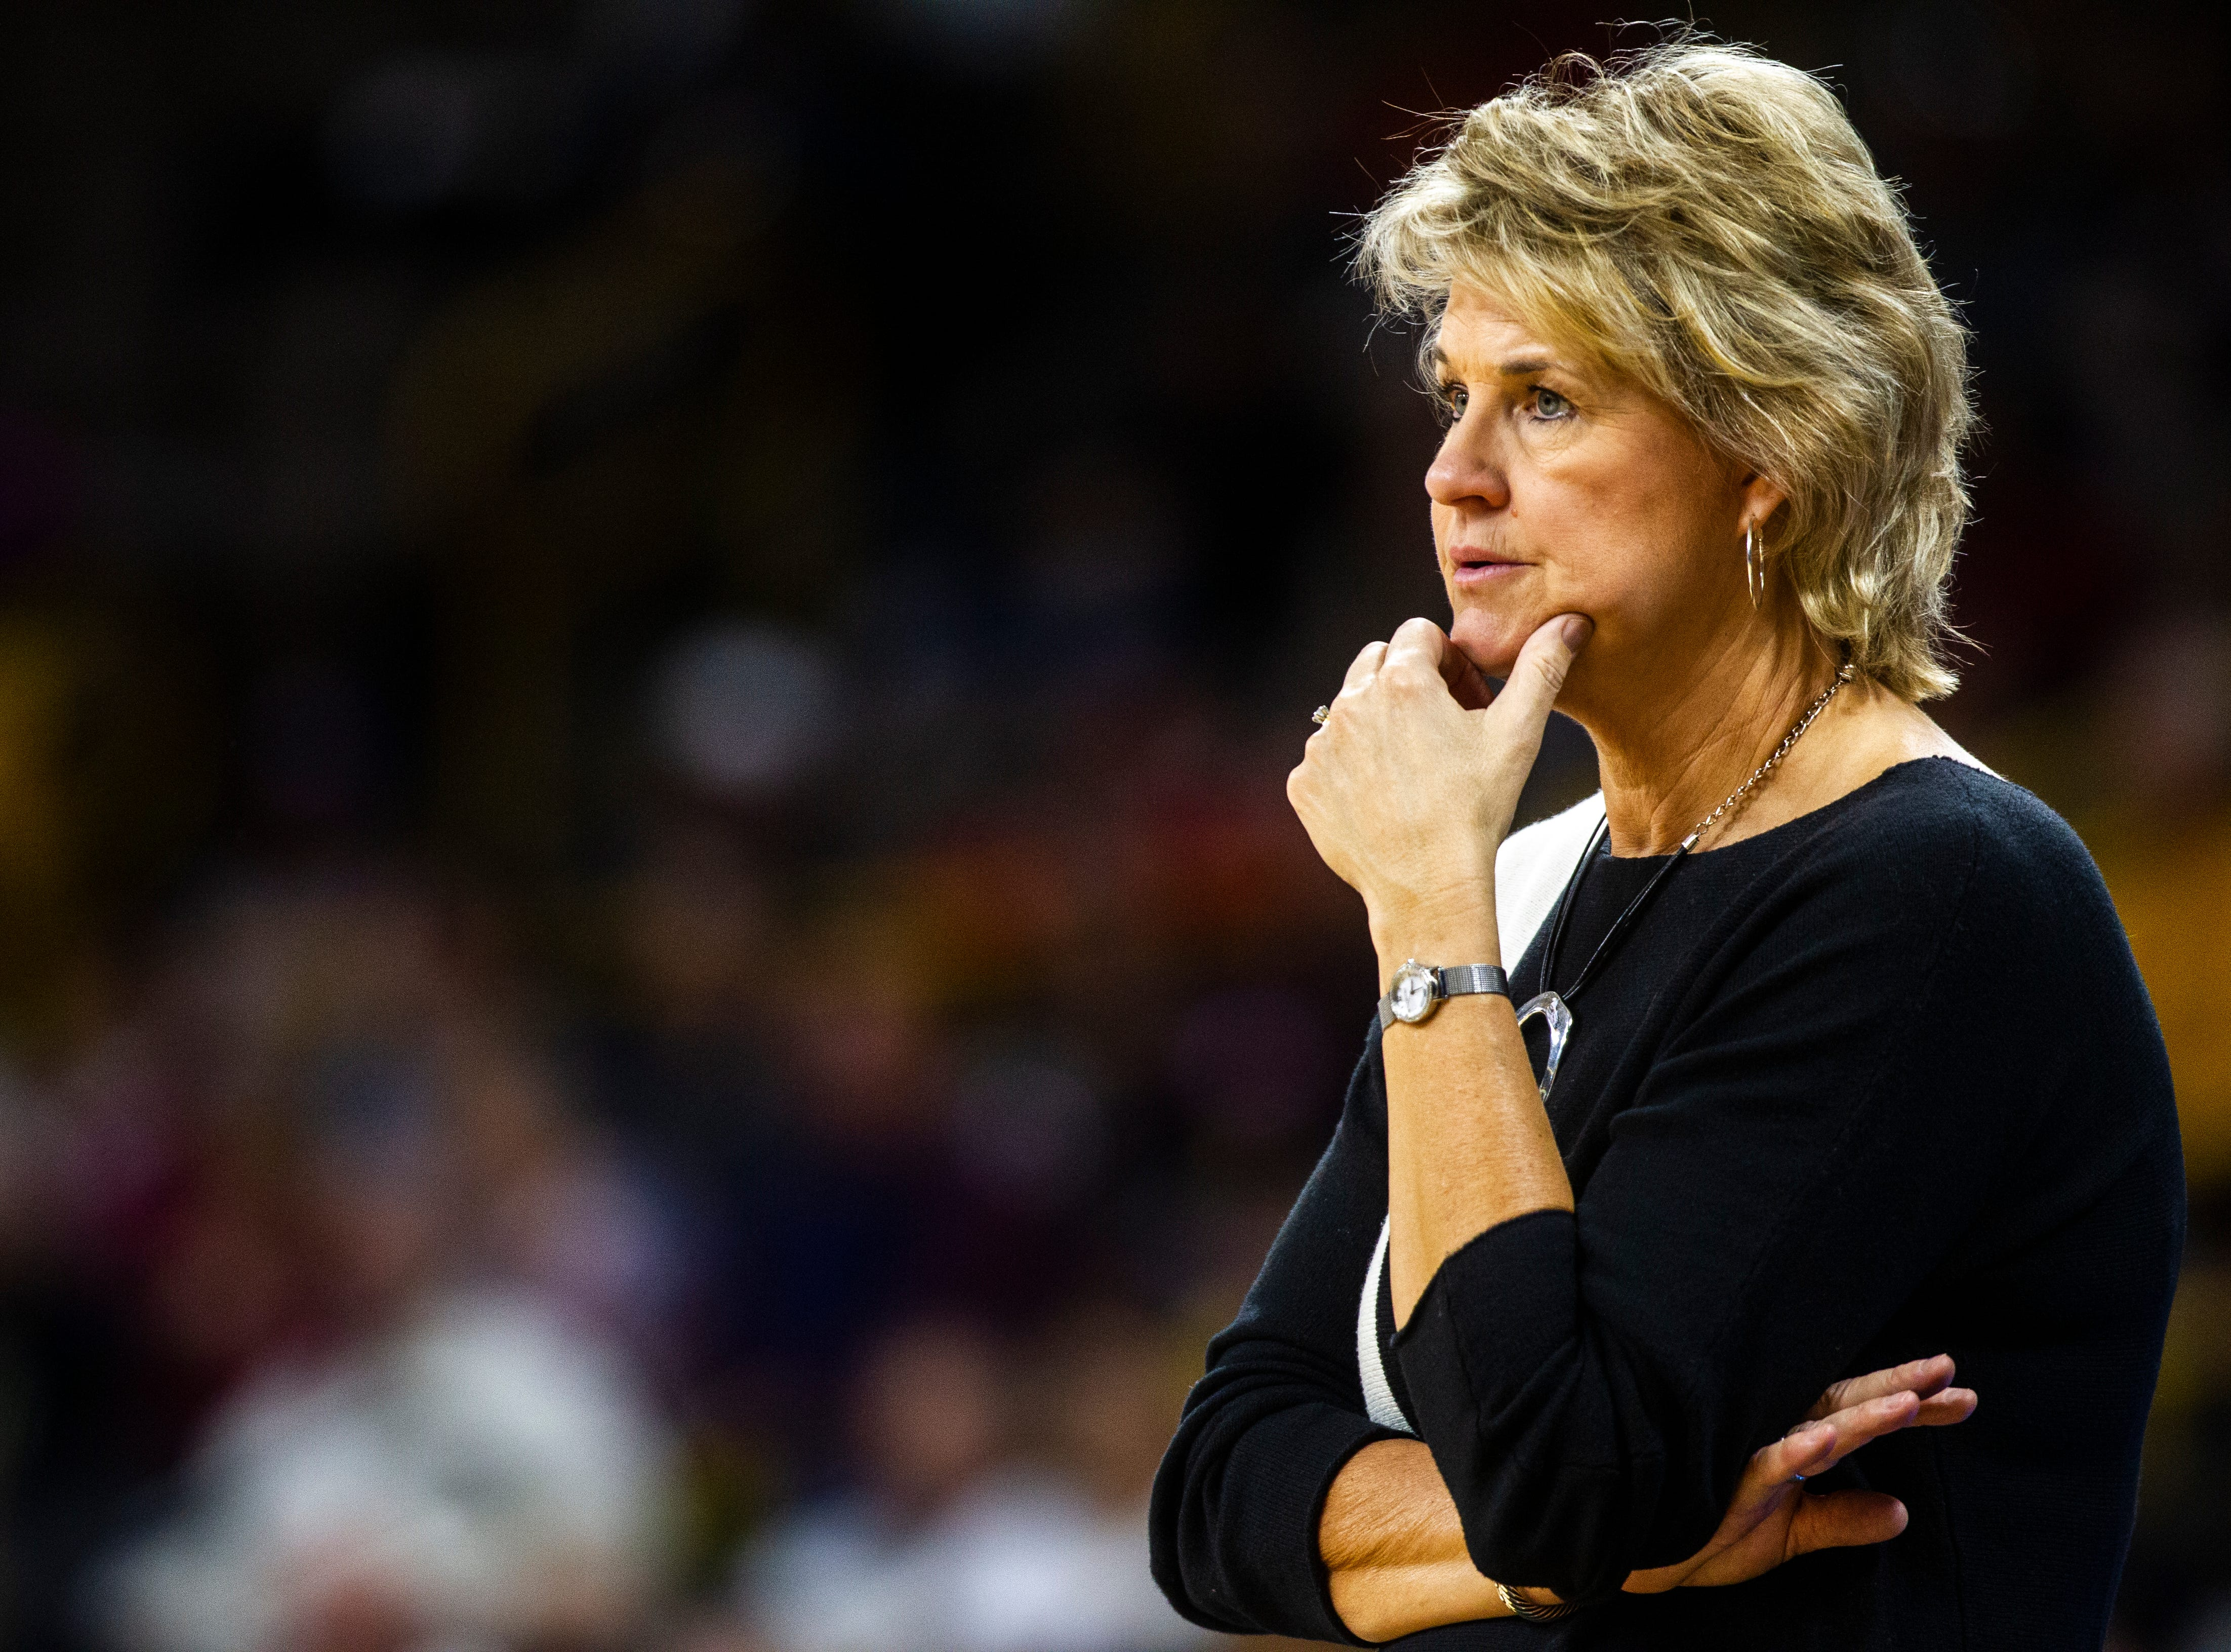 Iowa head coach Lisa Bluder looks on during a NCAA women's basketball game on Saturday, Dec. 8, 2018, at Carver-Hawkeye Arena in Iowa City.